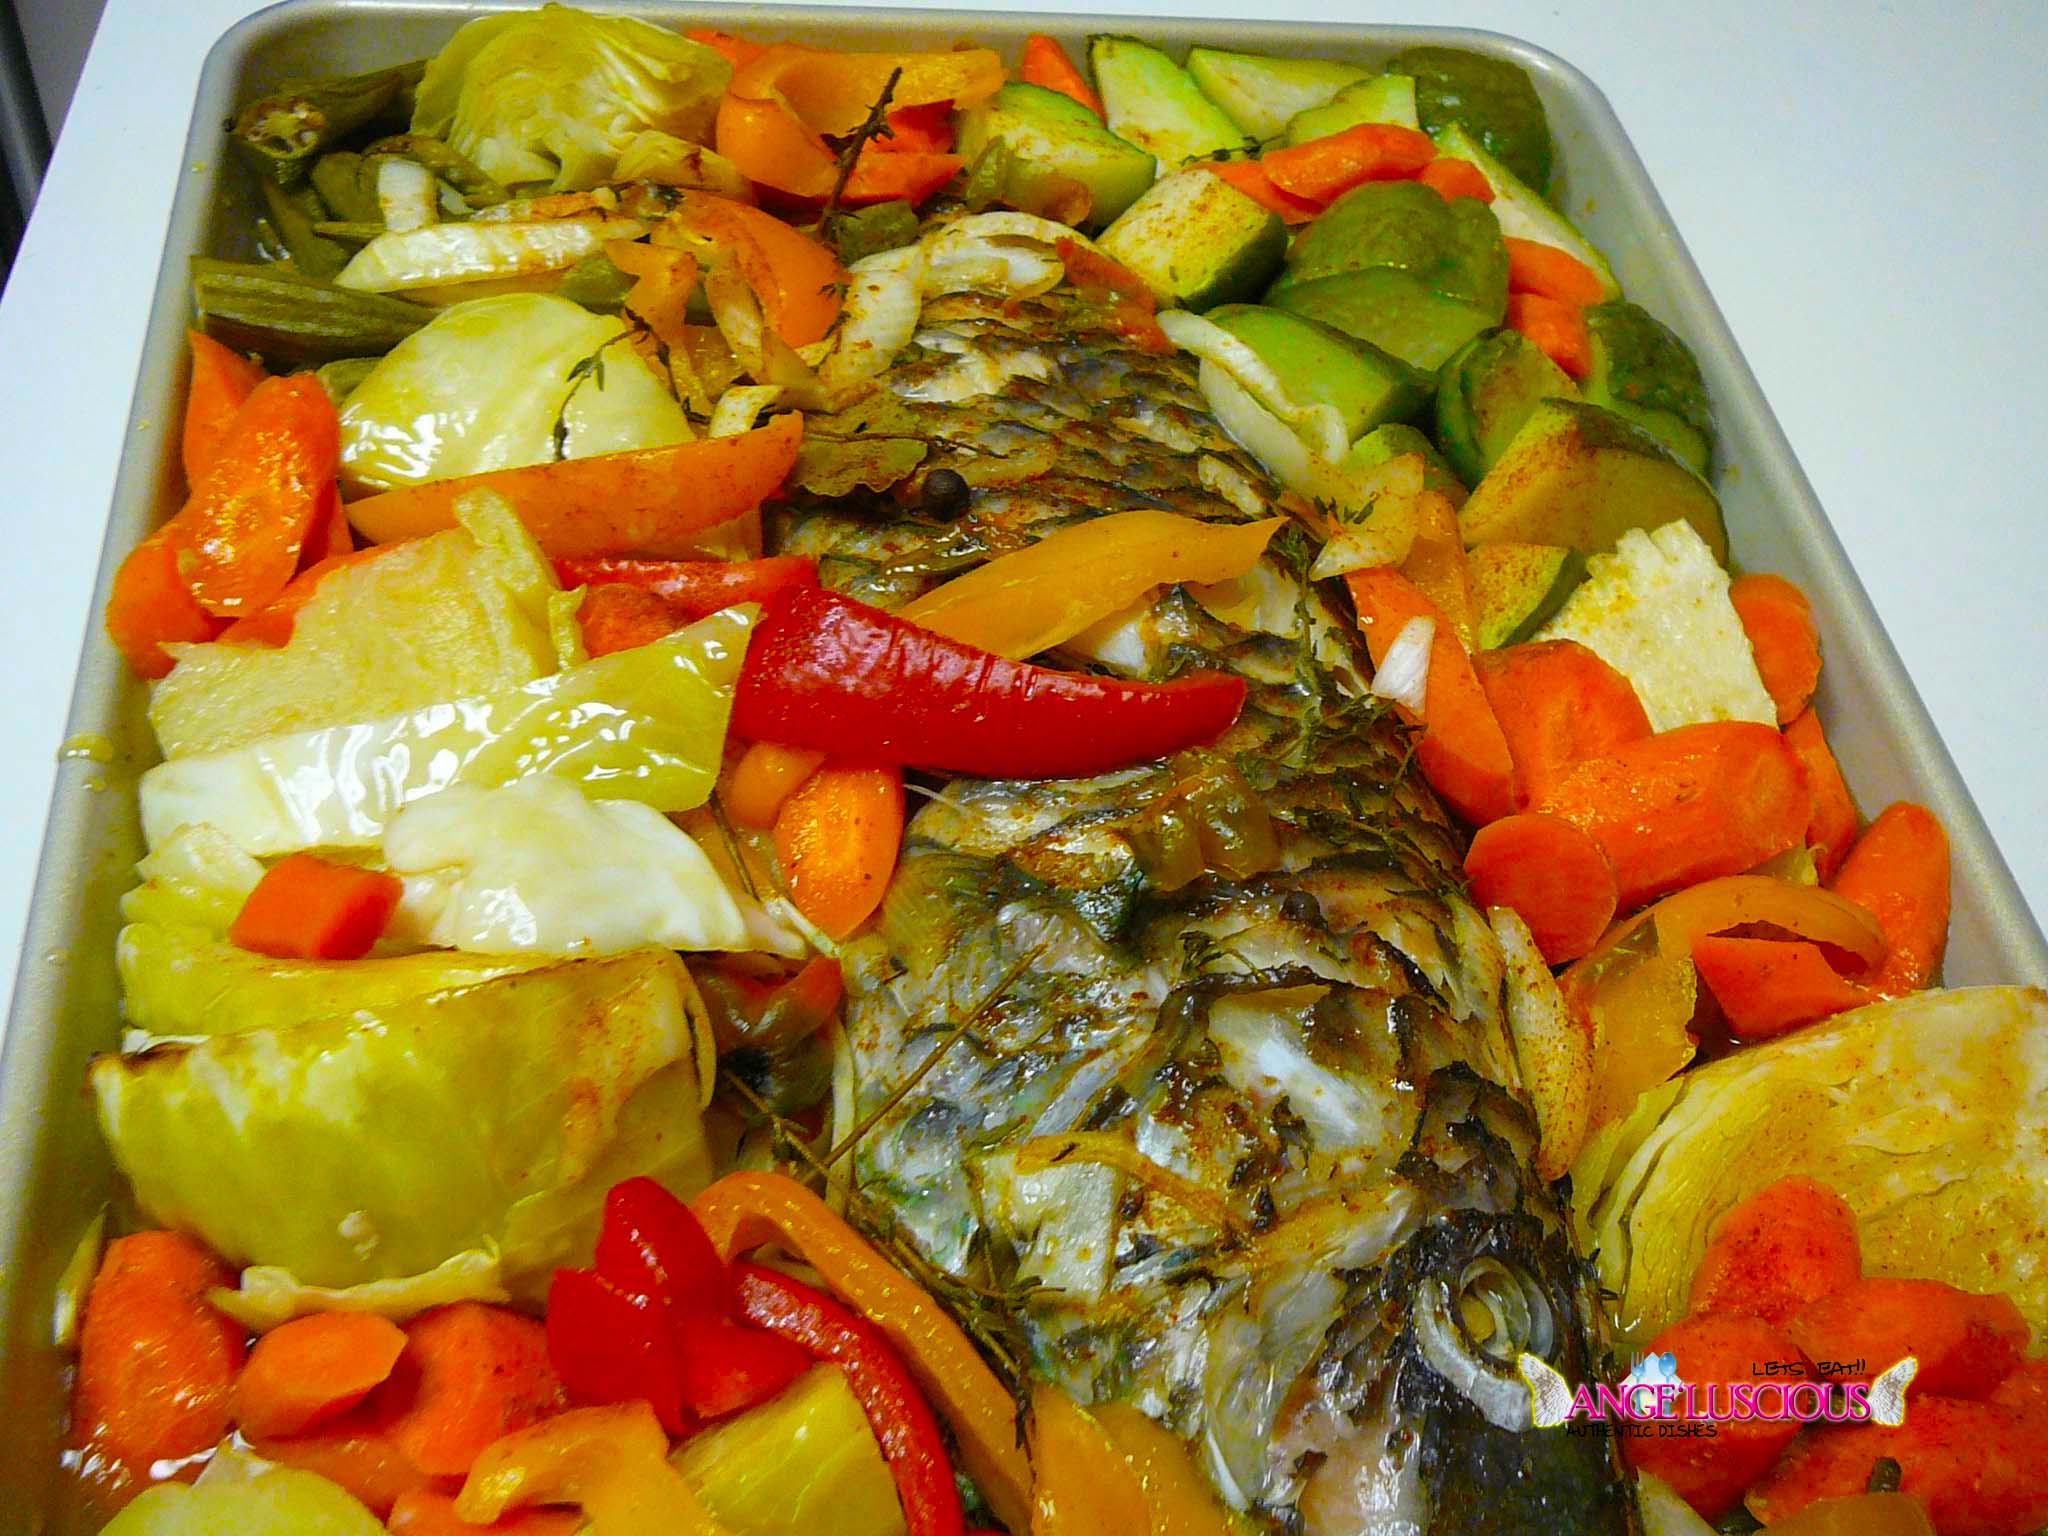 Oven roasted parrot fish and vegetables angeluscious for Fish with vegetables